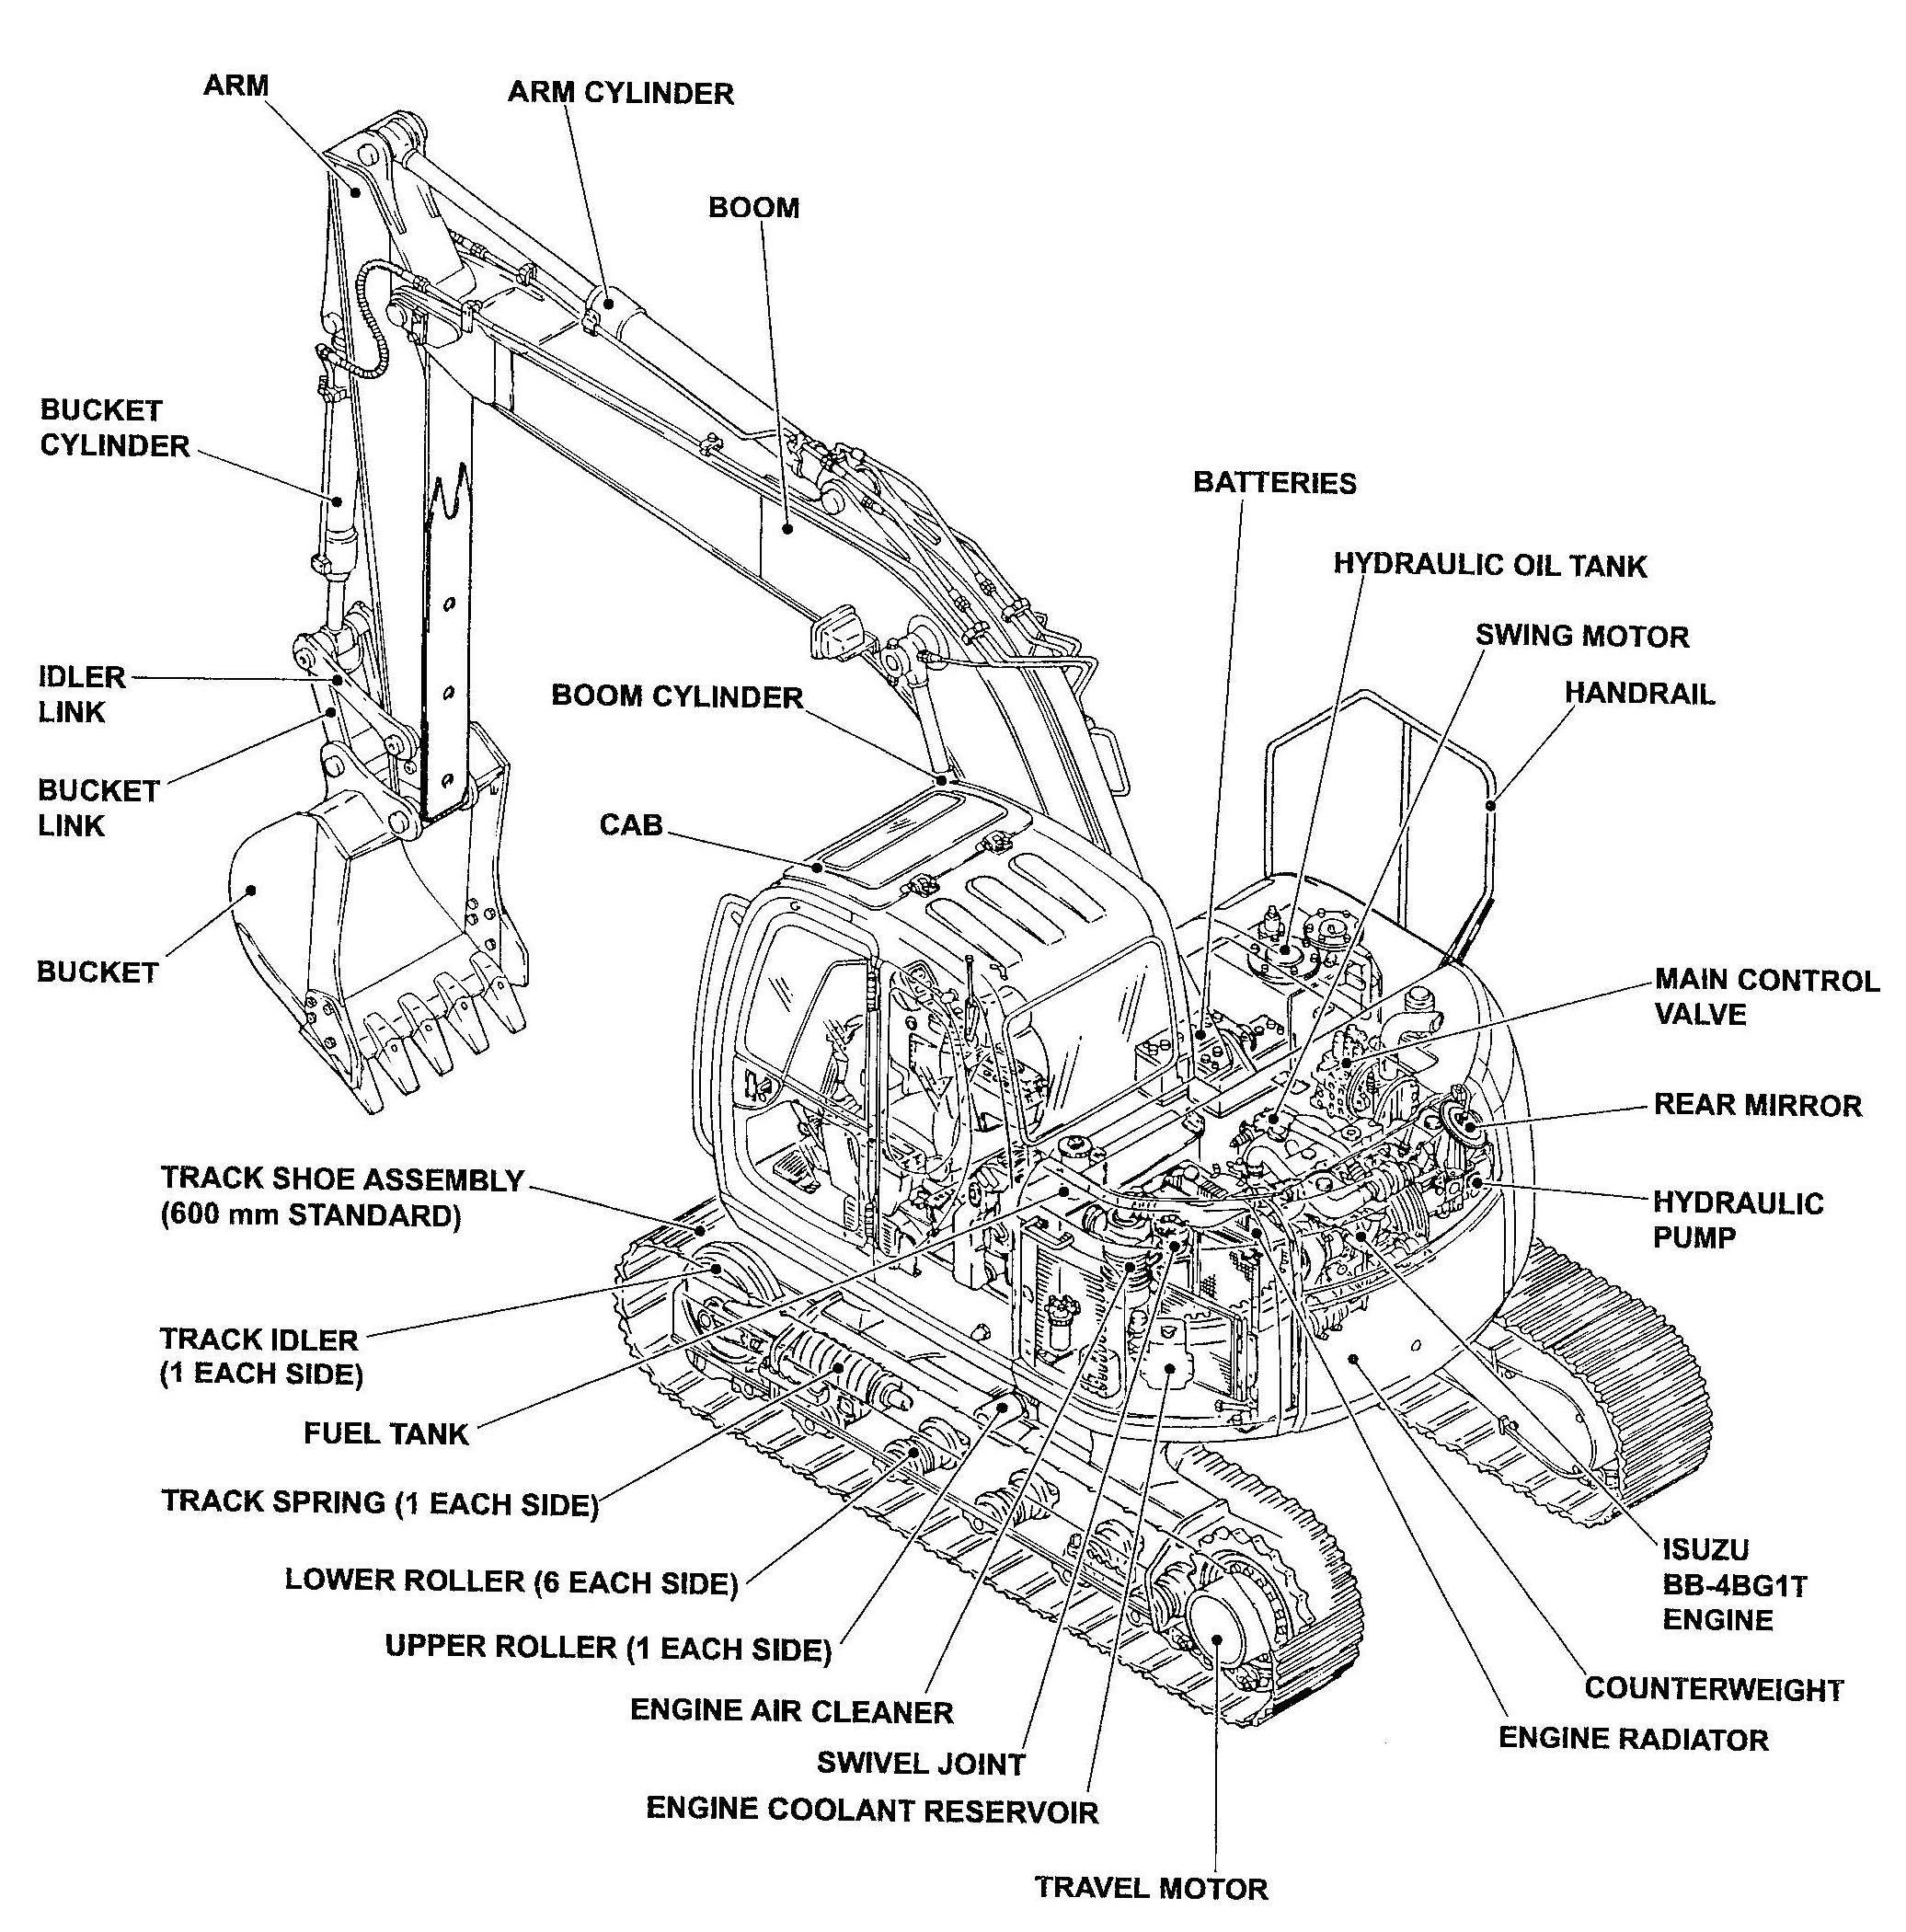 image result for crawler excavator diagram volvo diagram cars and motorcycles craft projects [ 2072 x 2100 Pixel ]